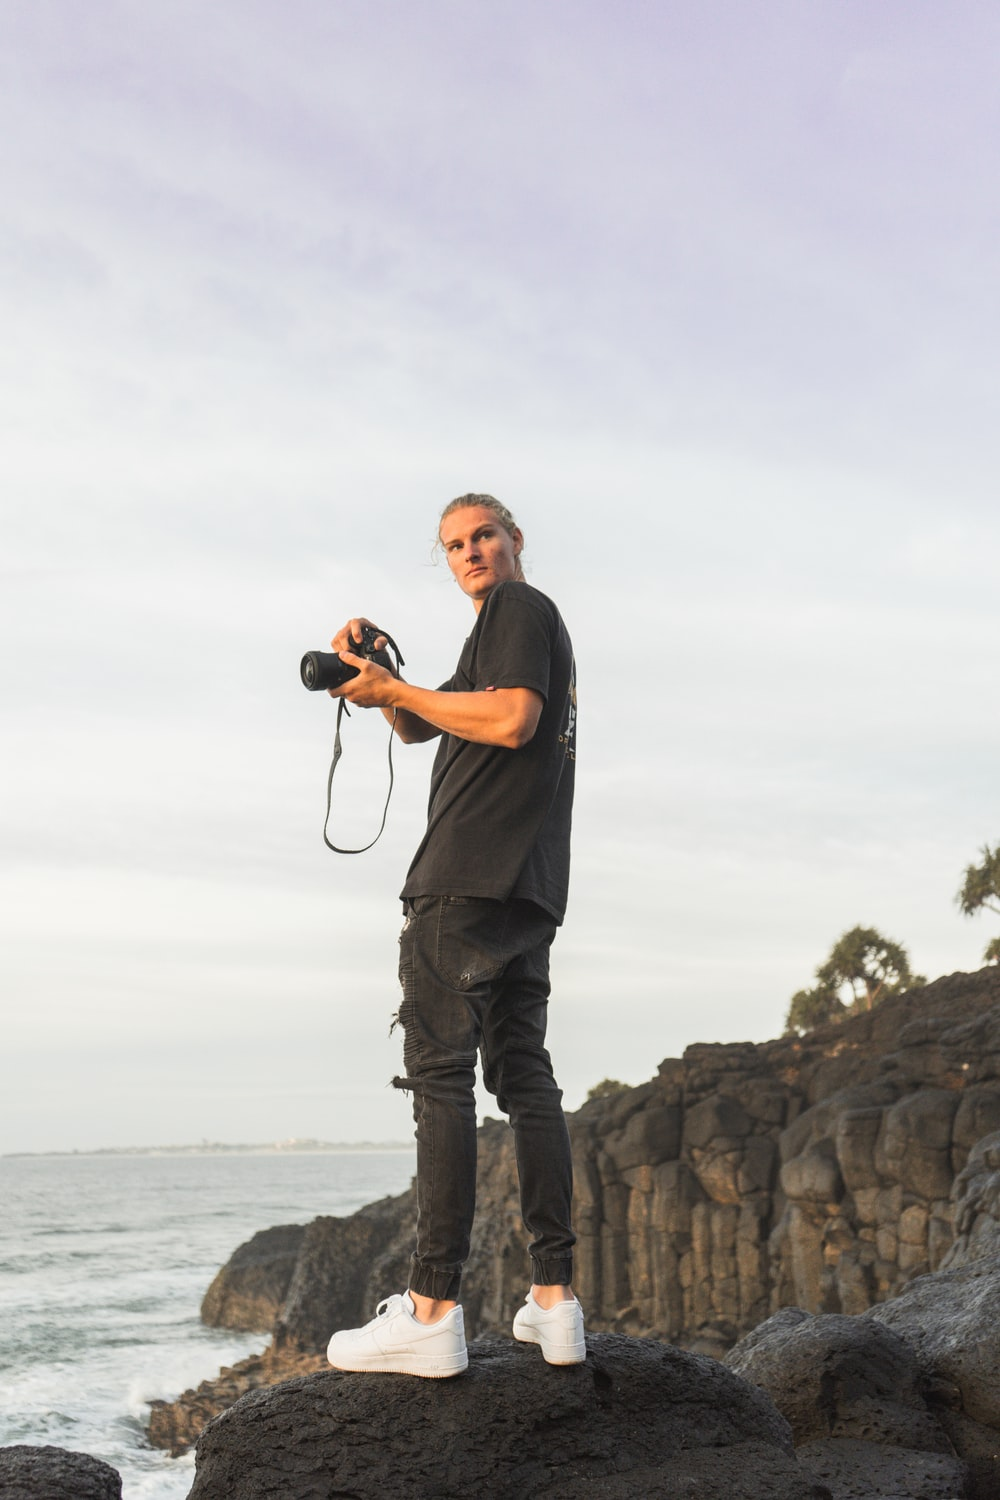 man in black t-shirt and gray pants holding camera standing on rock formation near sea